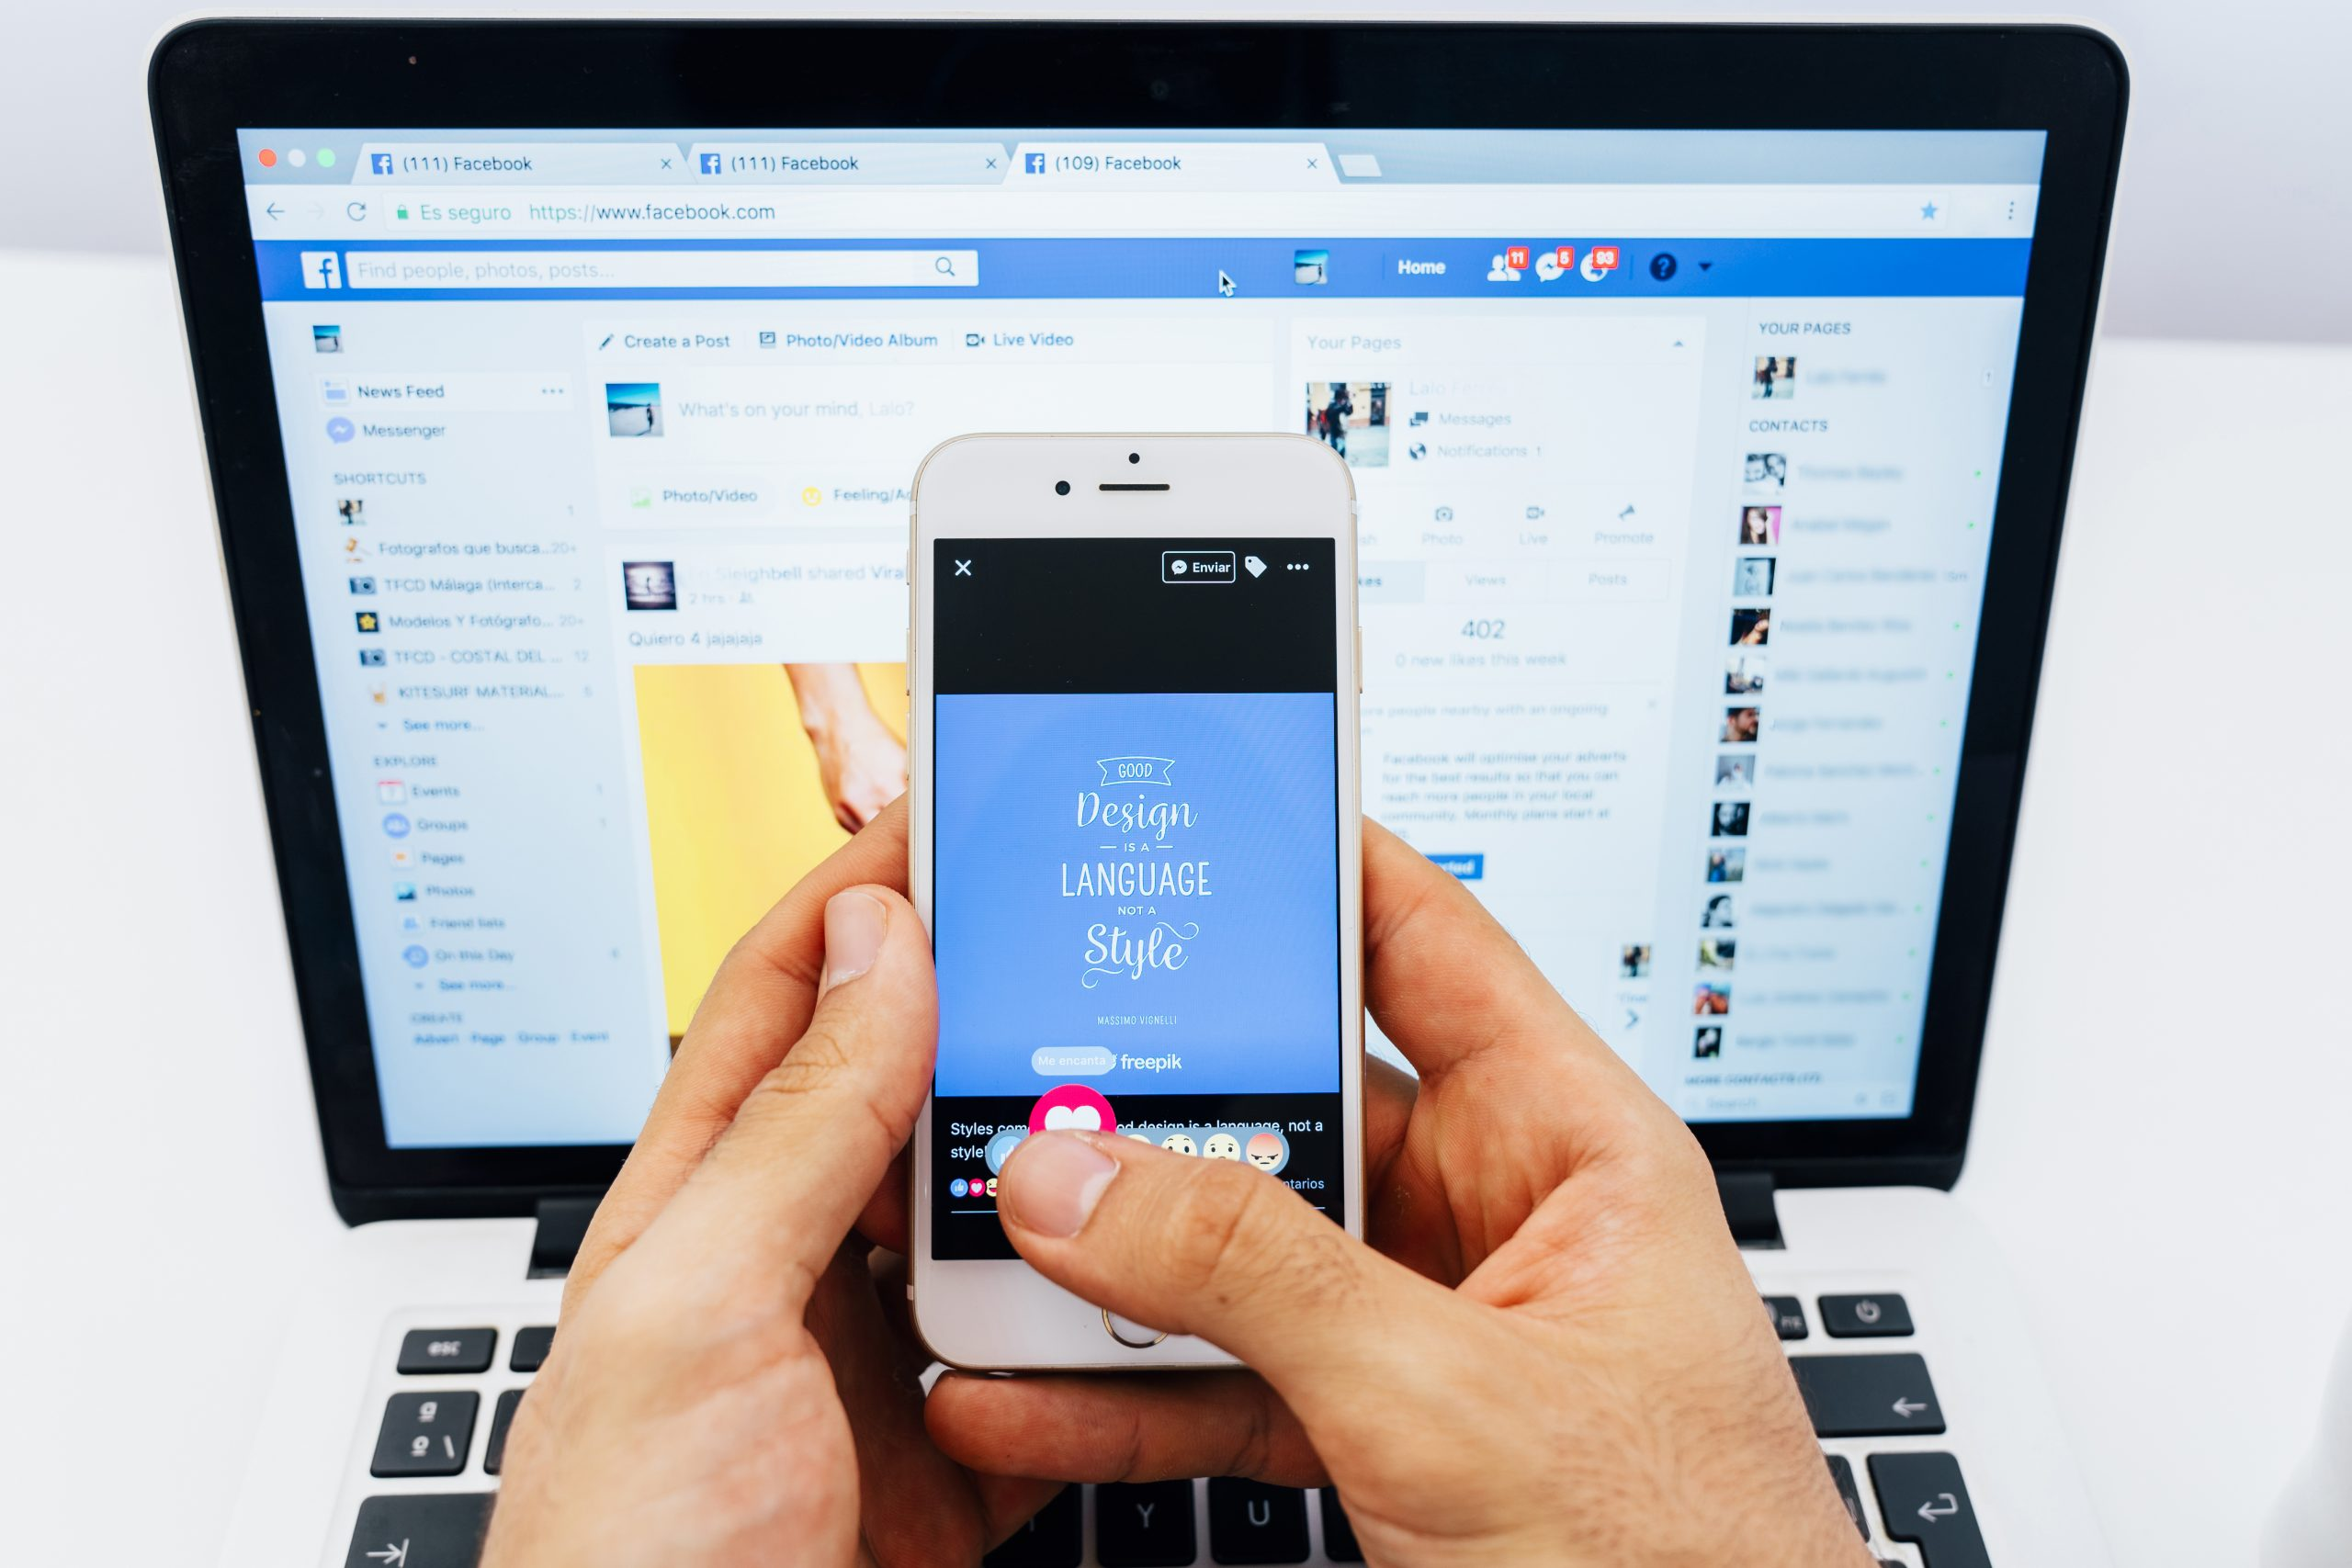 man holding smartphone with facebook screen showing